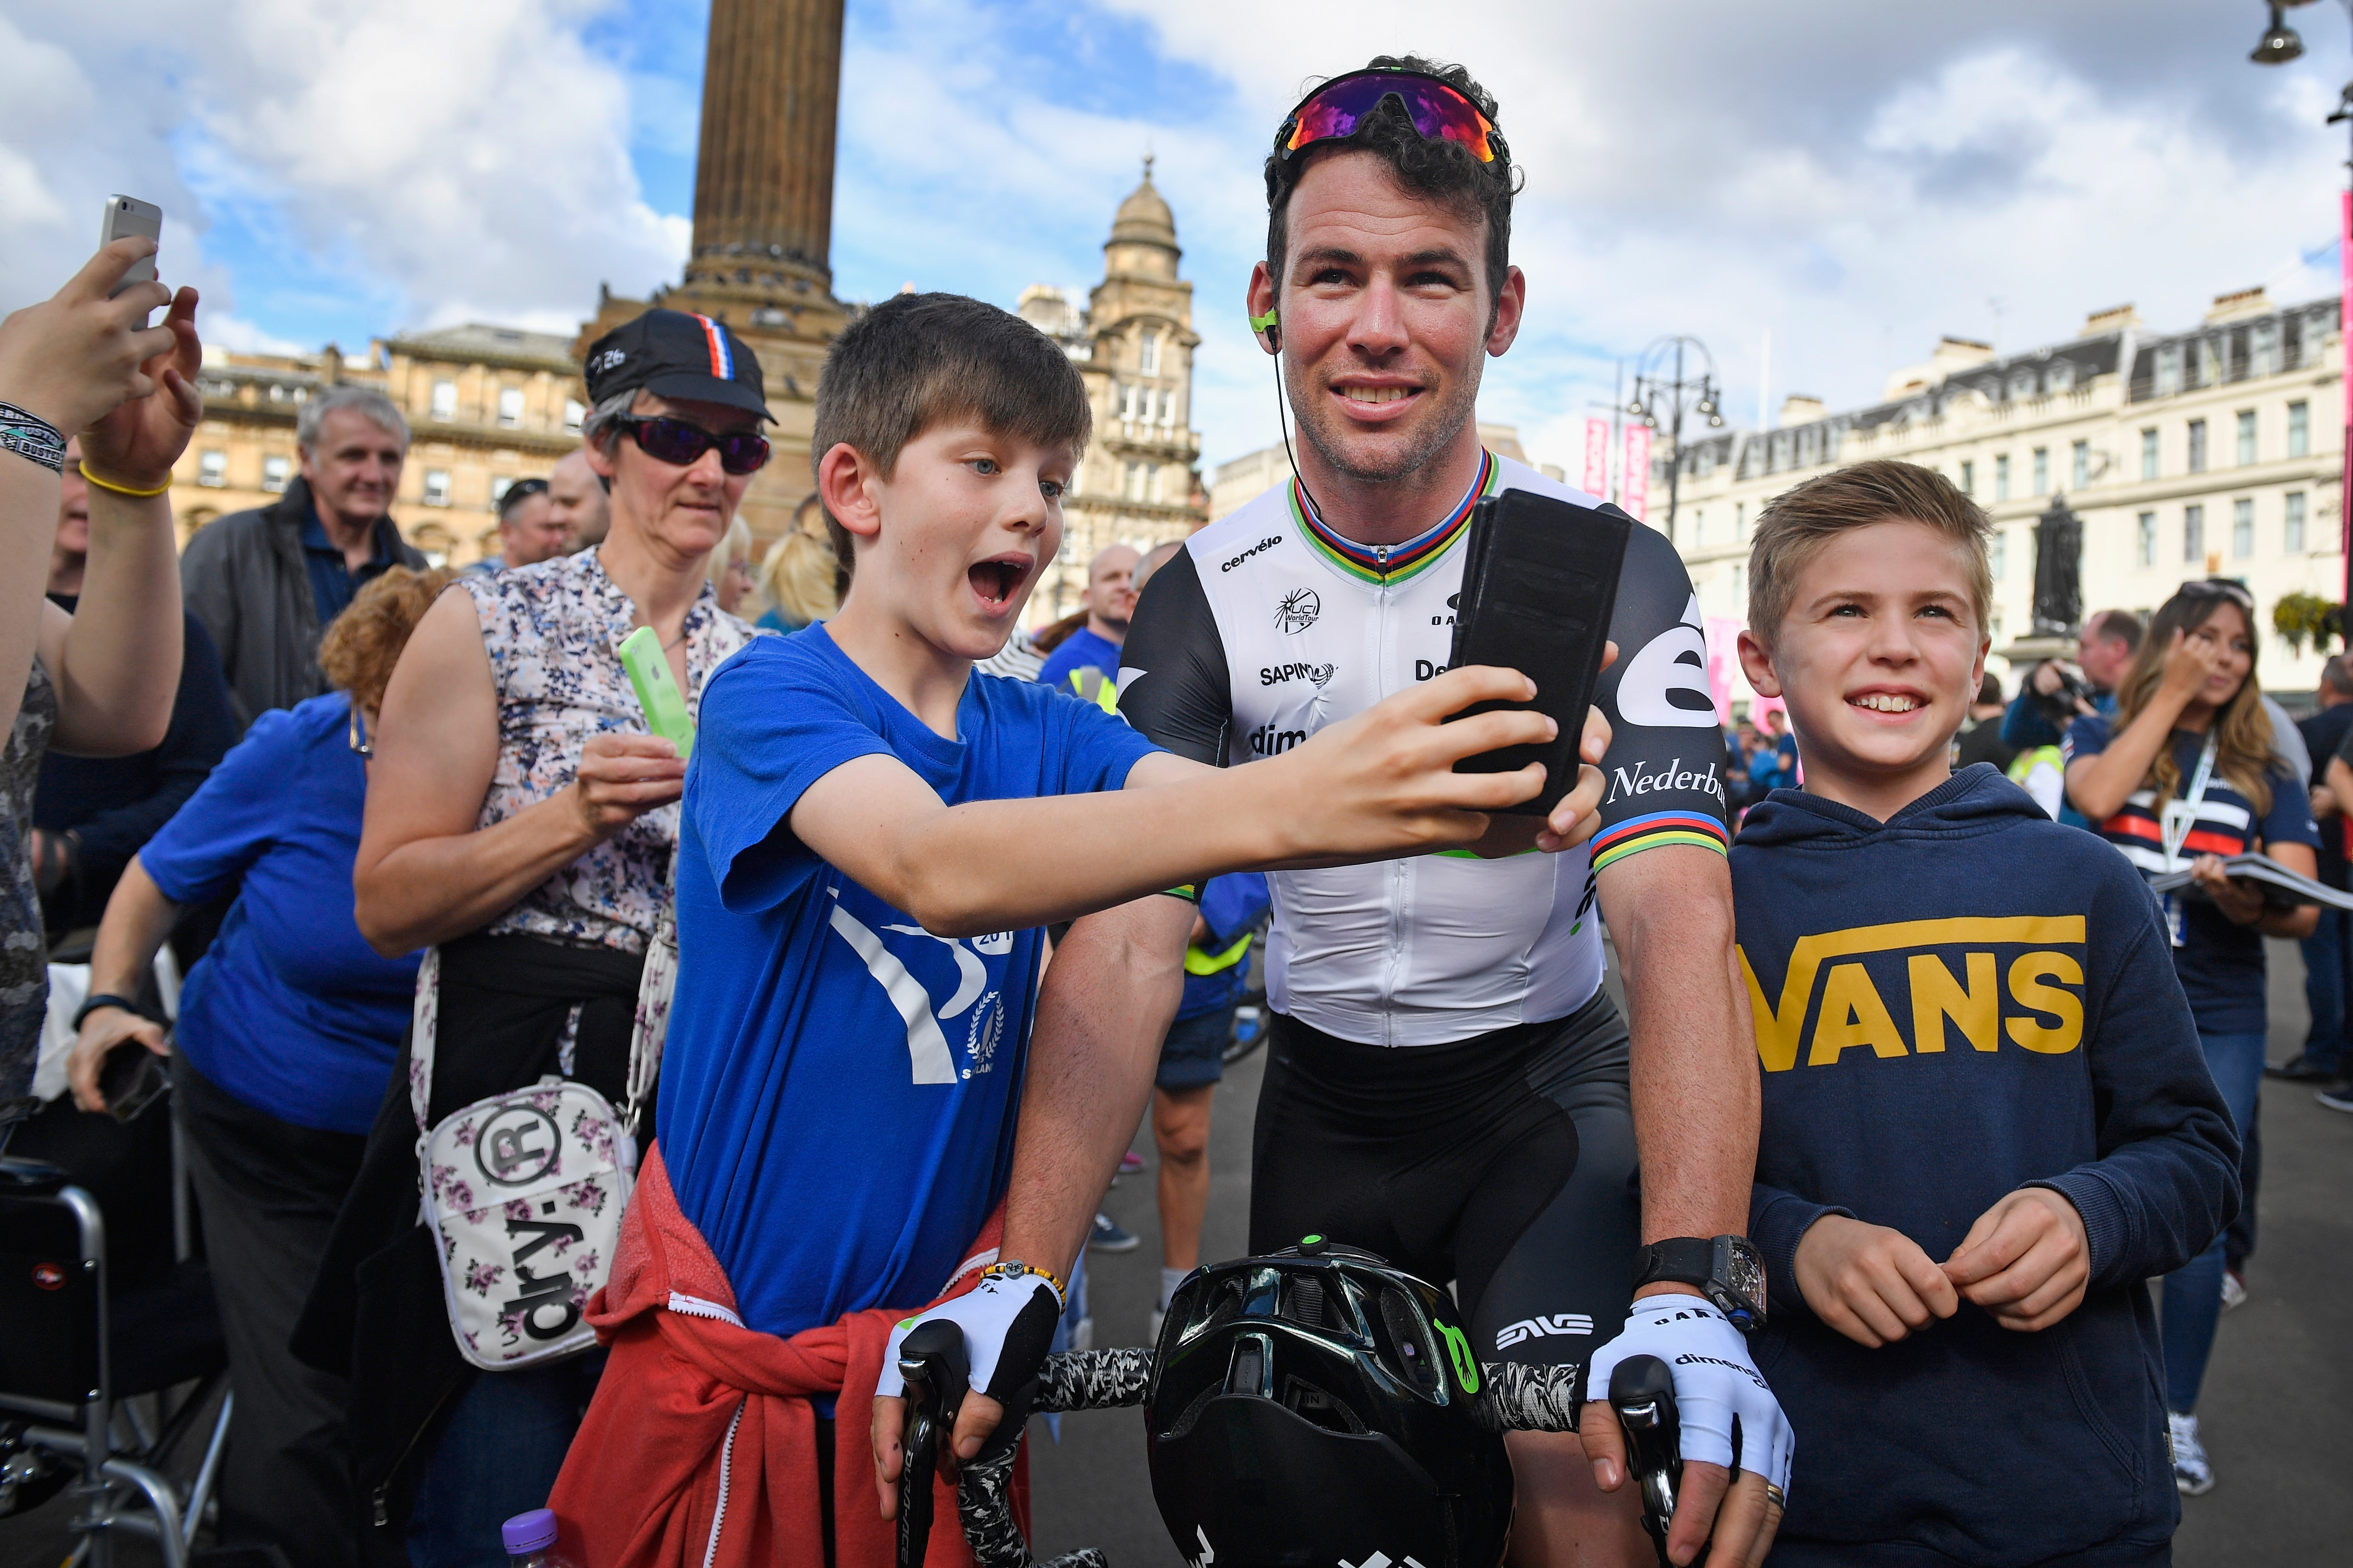 Clydeside Classics: Cycling's 2016 crucible